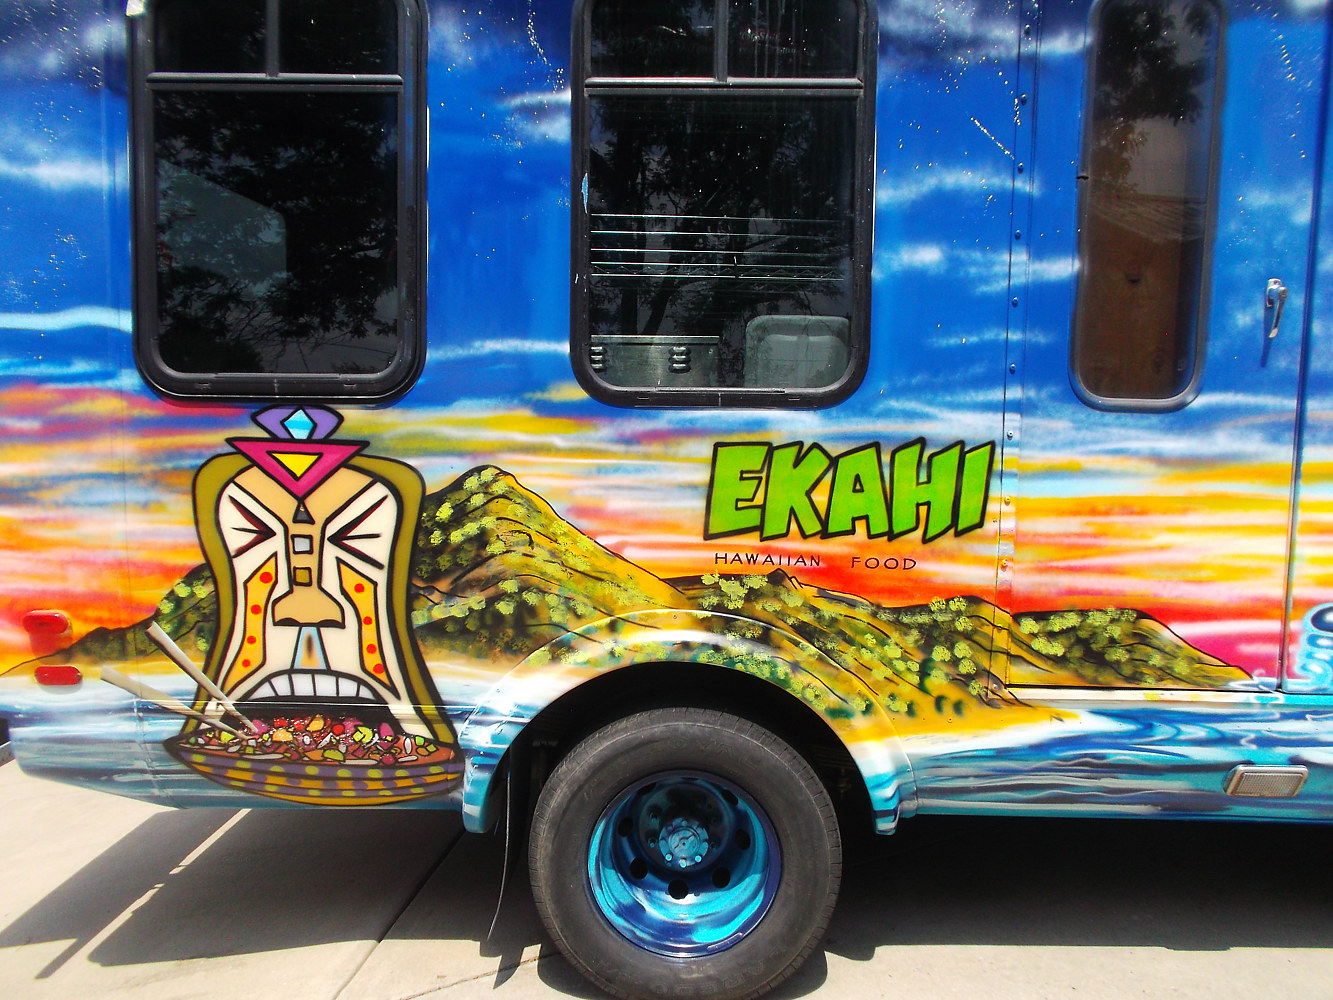 Ekahi Hawaiian Food Truck by Isaac Carpenter